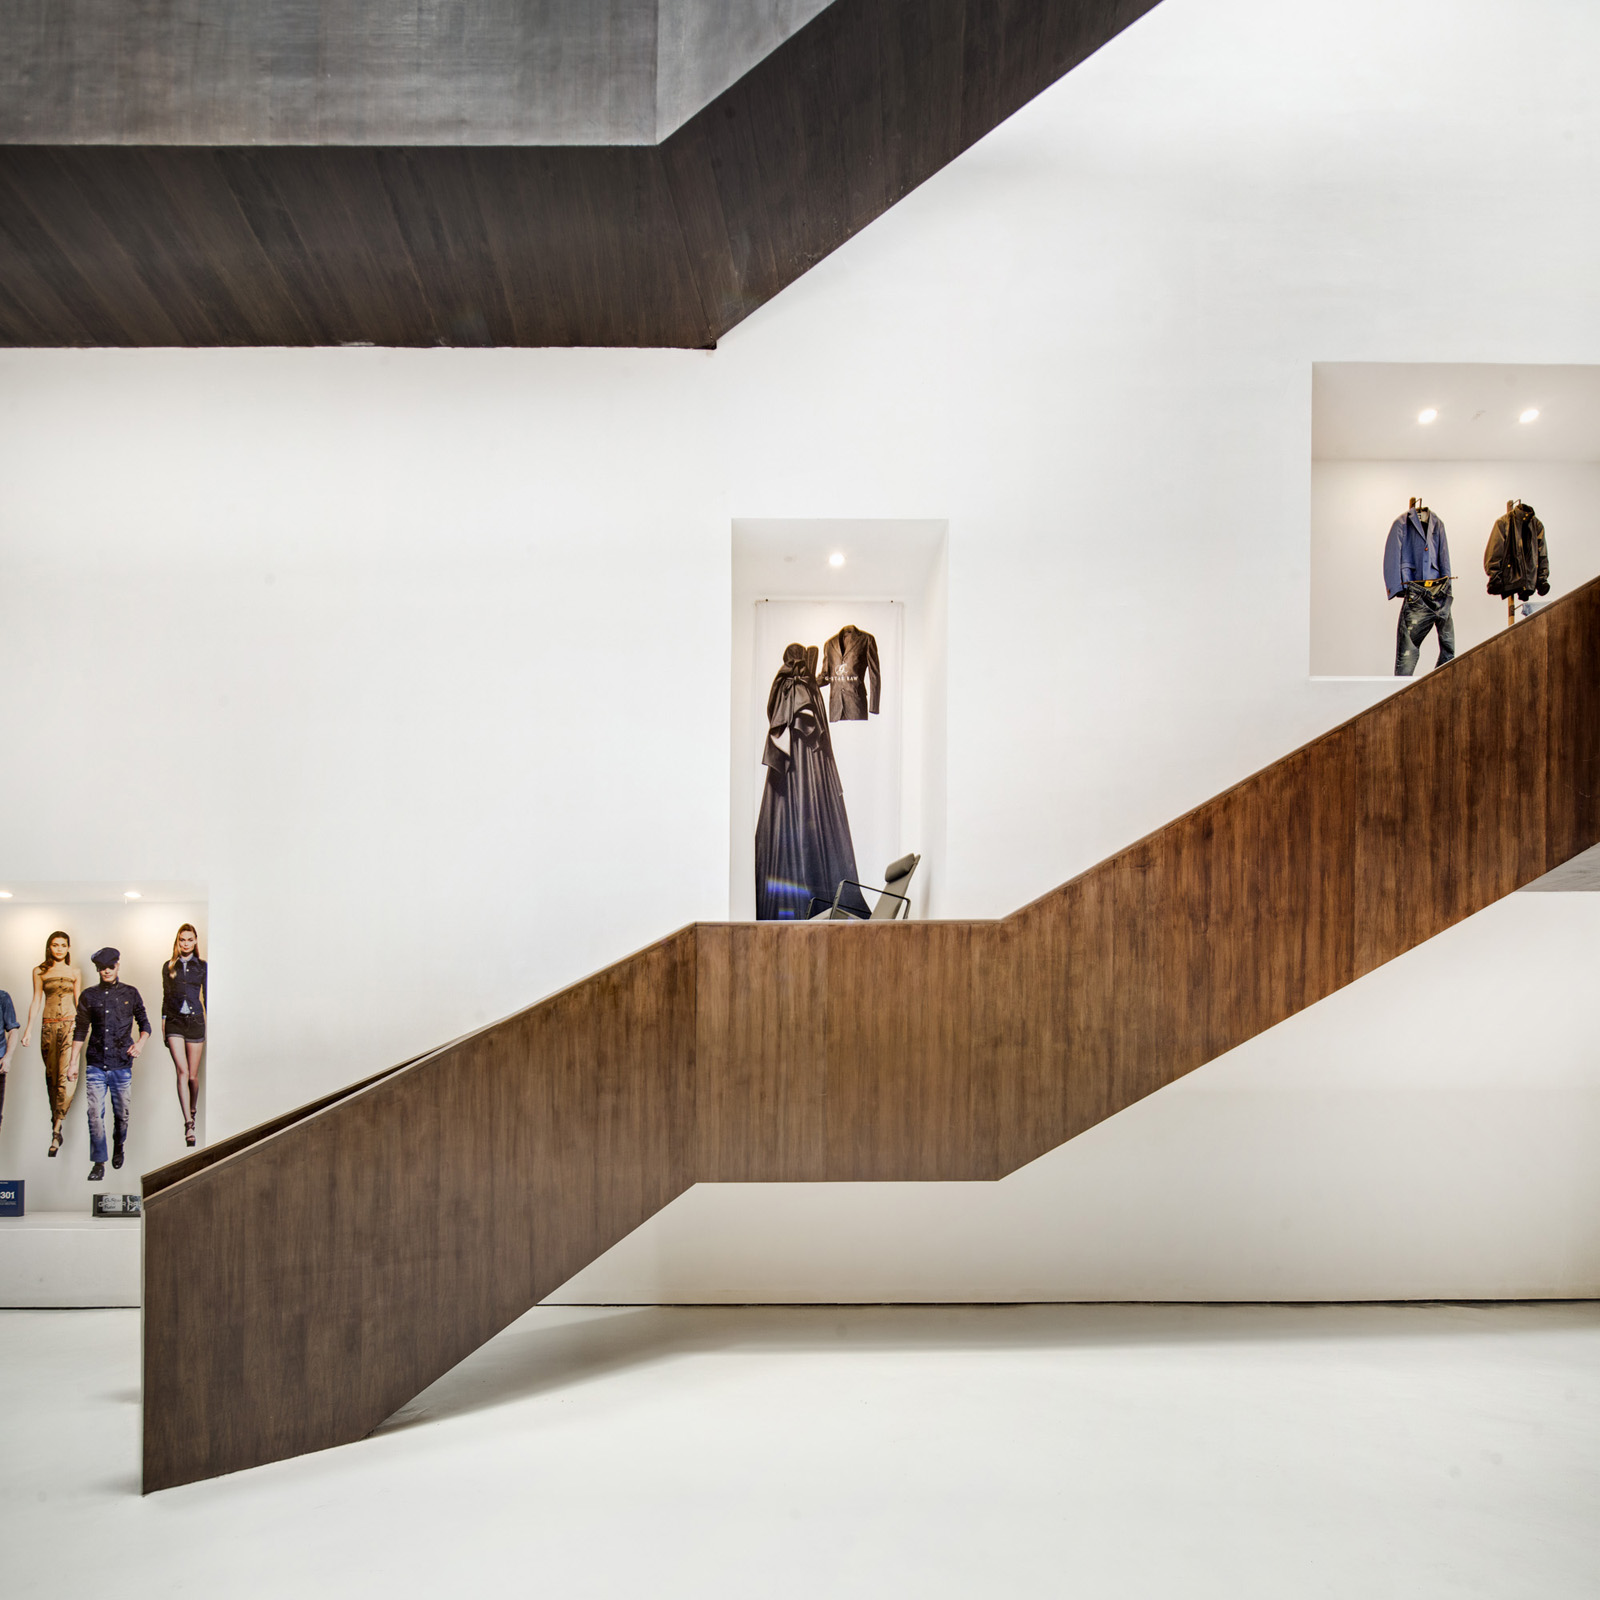 Design Collective / Neri & Hu Design and Research Office